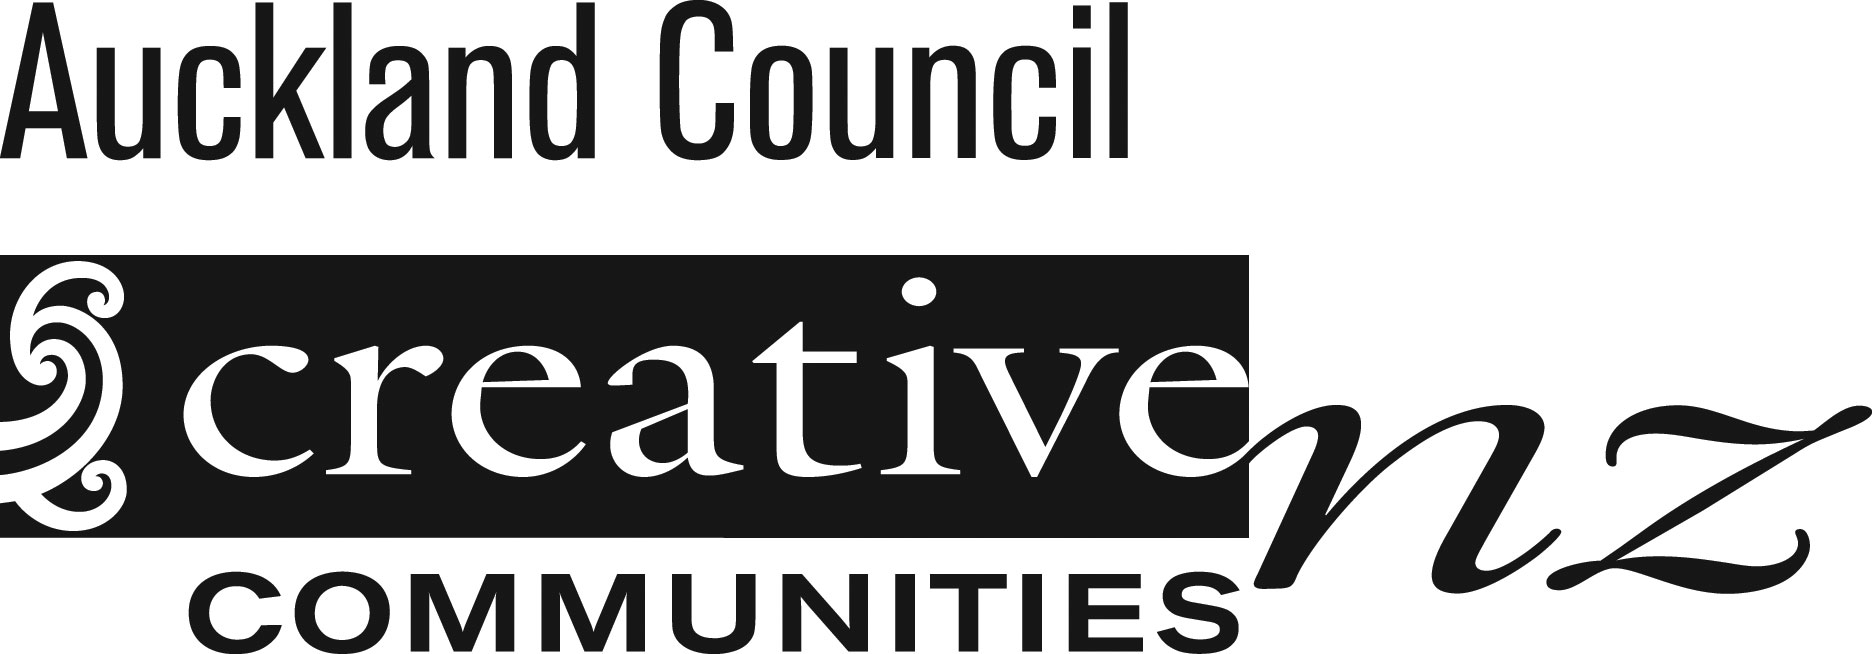 CreativeCommunityS-logo-auckland-council